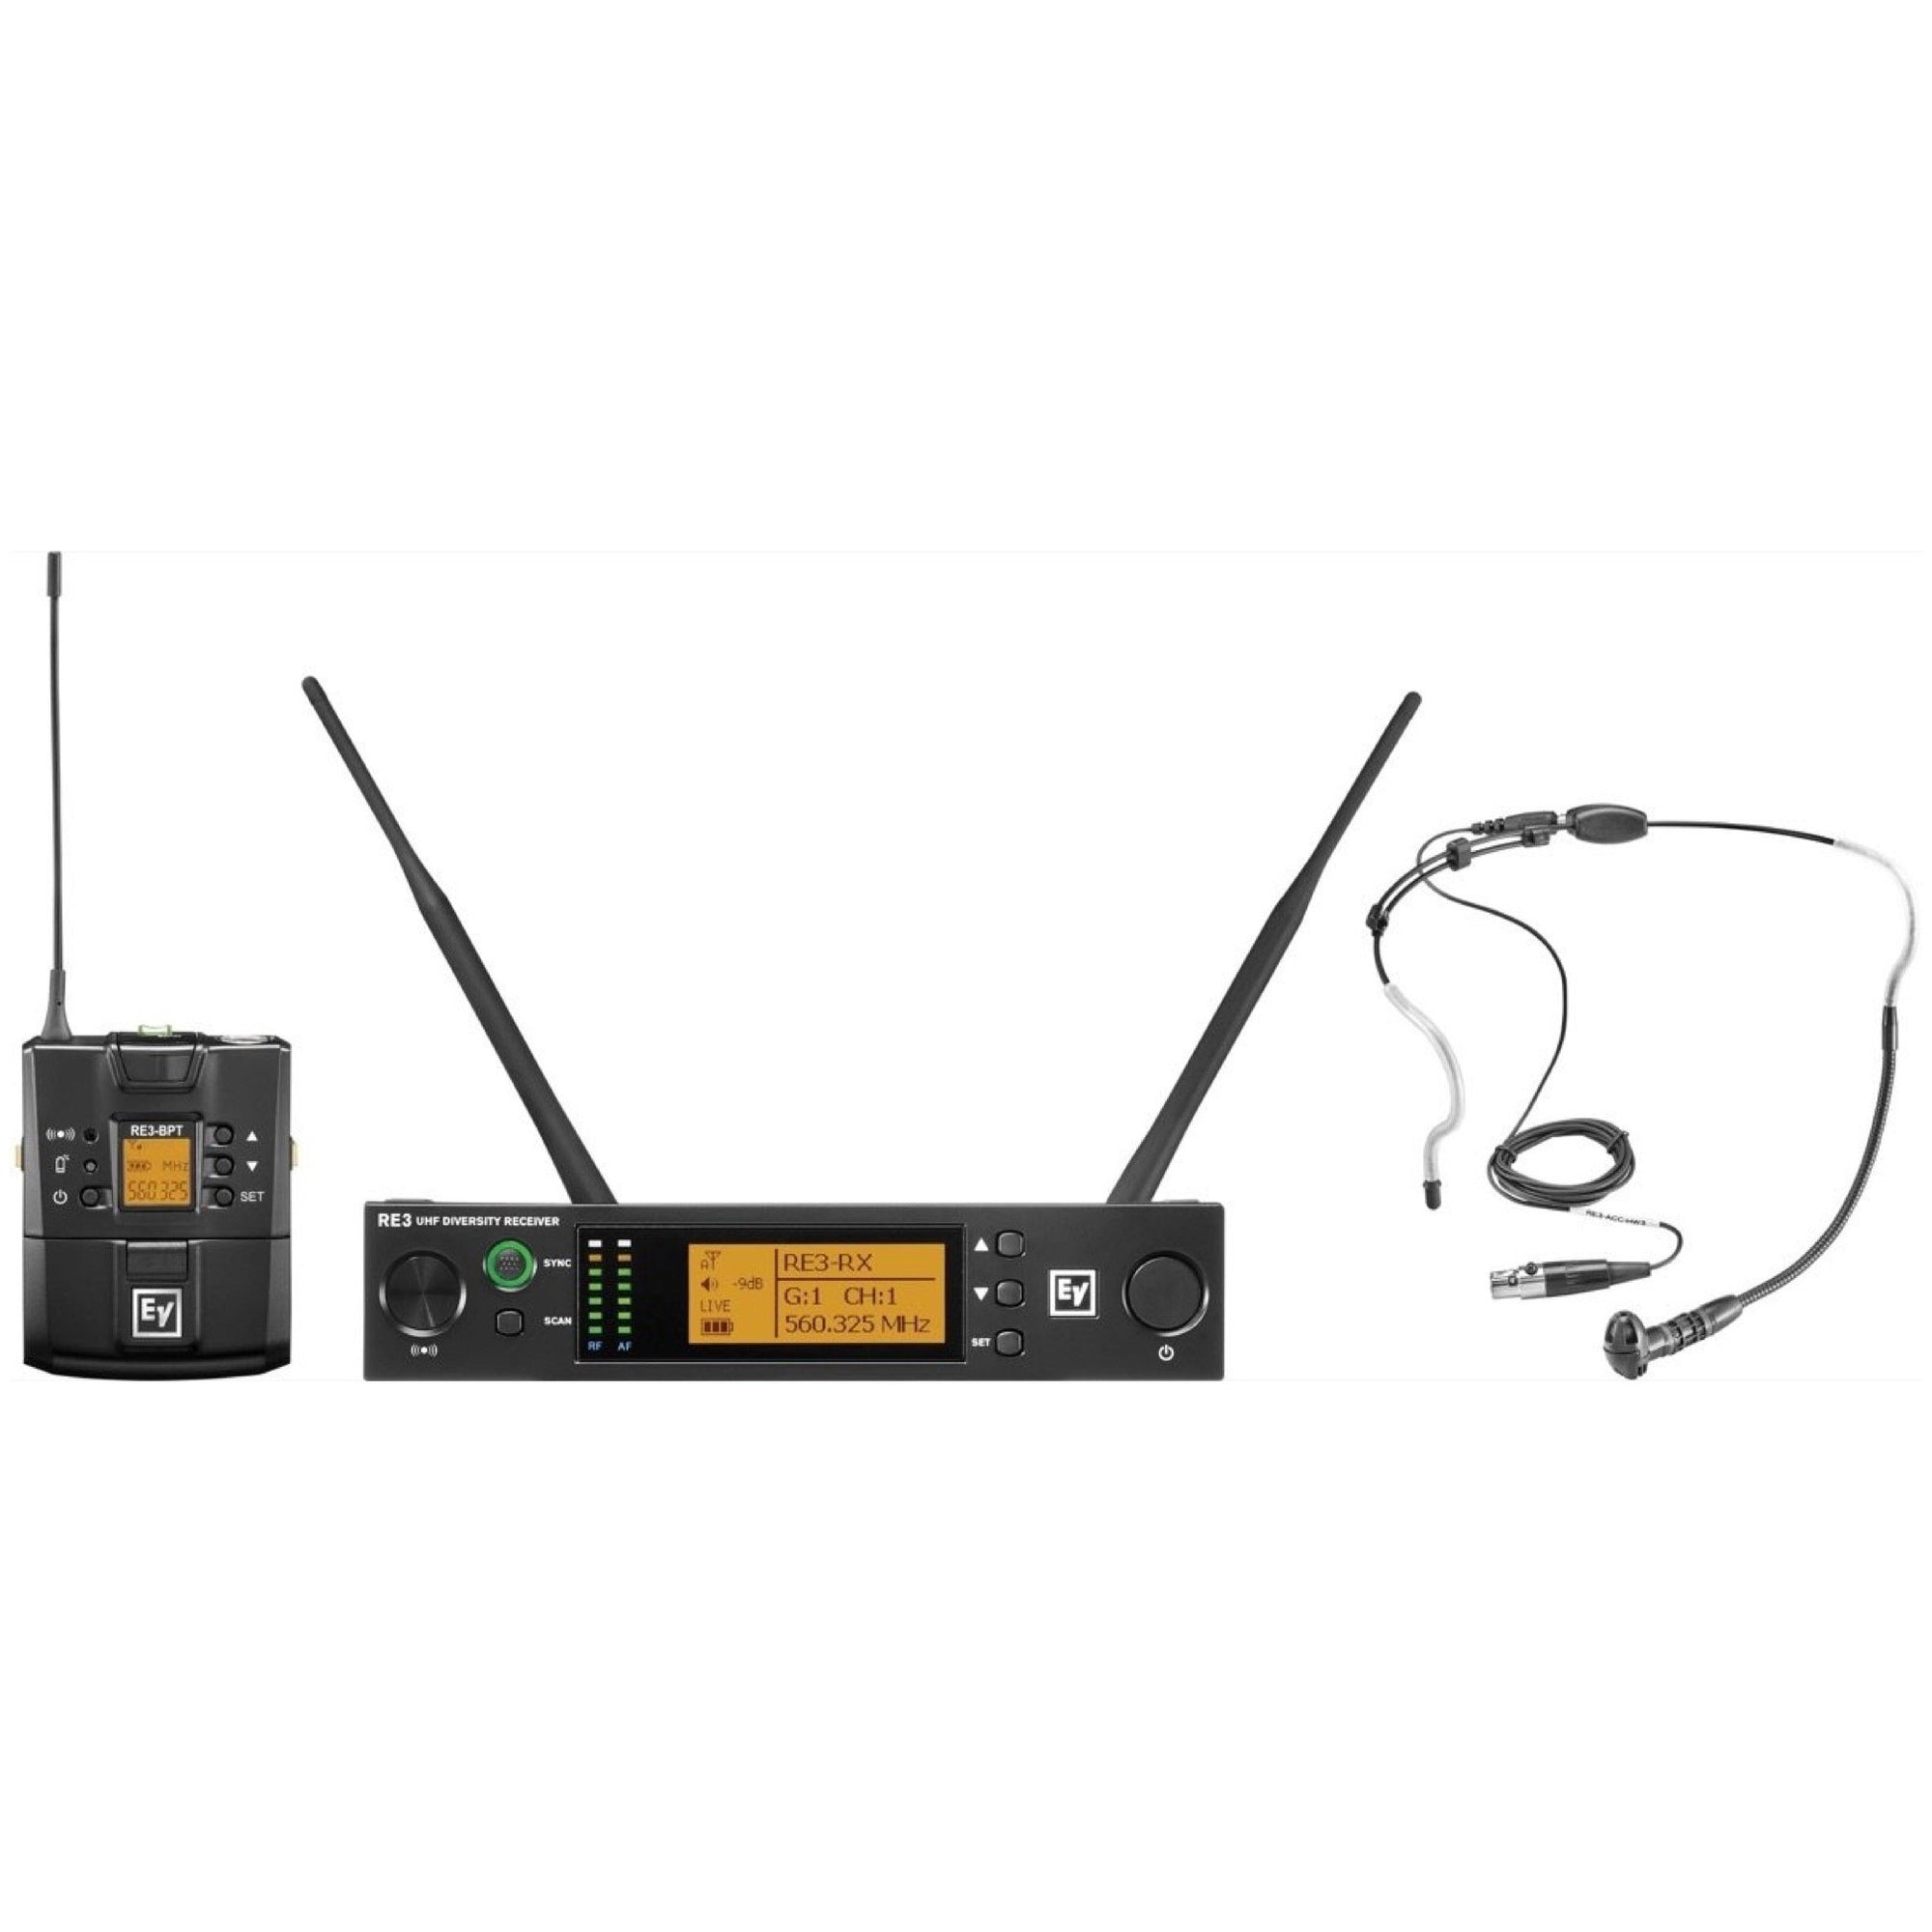 Electro-Voice RE3-BPHW Headset Wireless Microphone System, Band 6M (653-663 MHz)